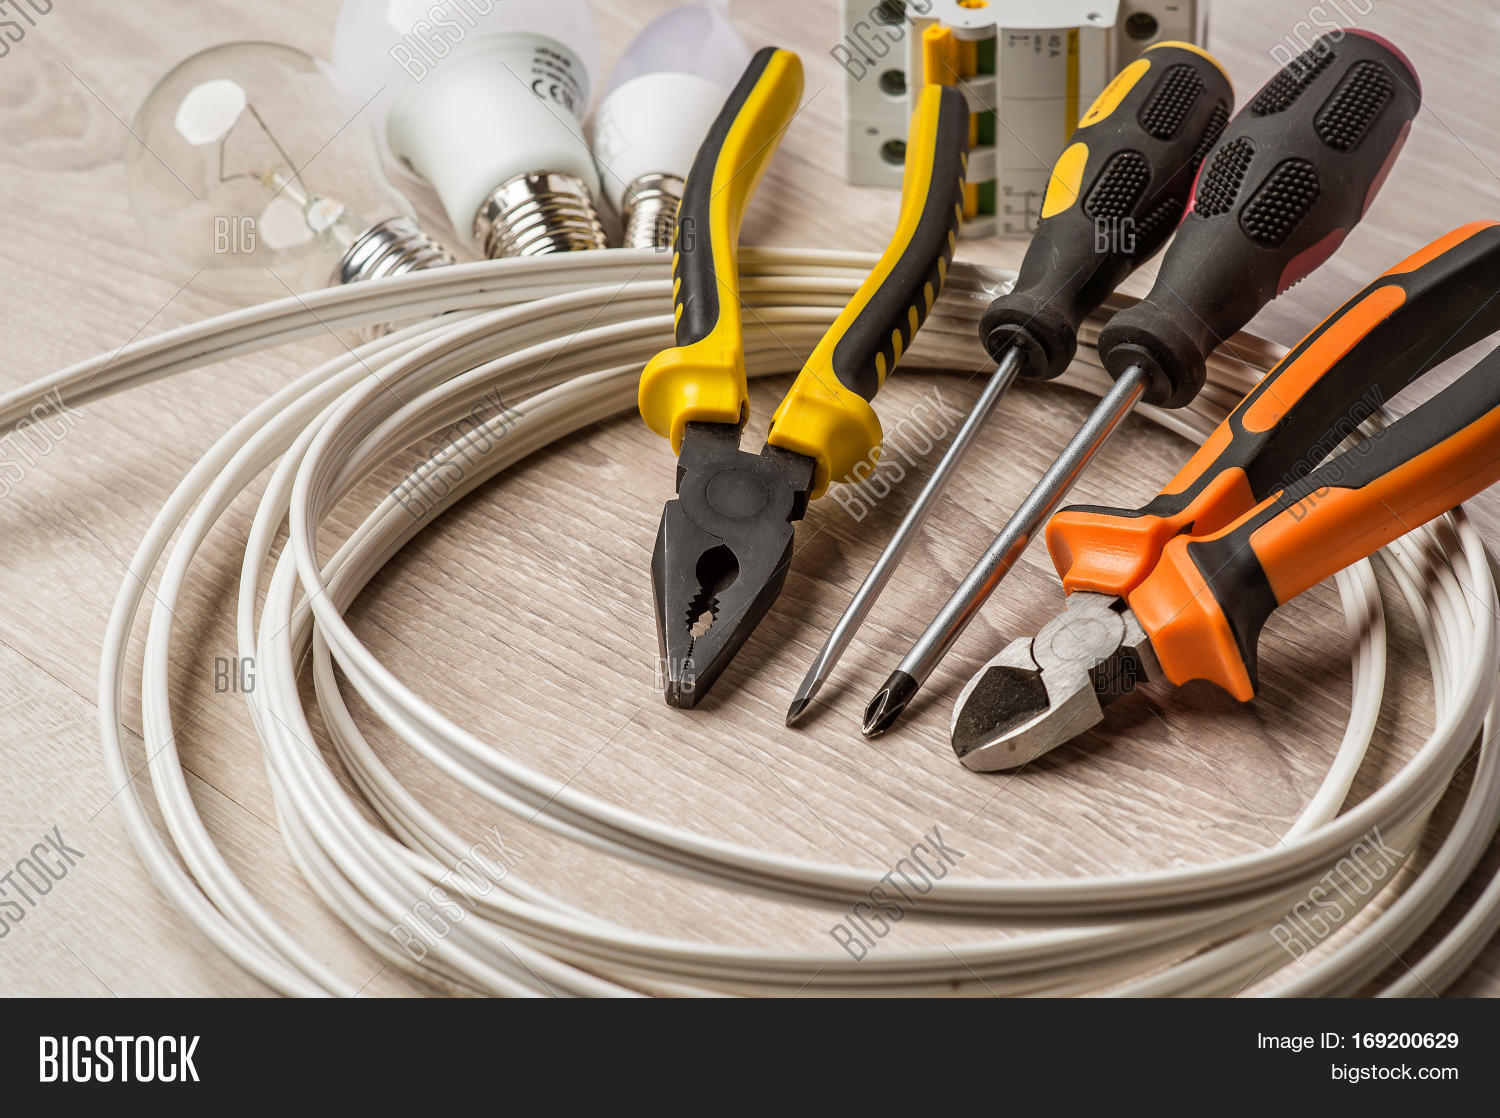 Set Tools Electrician Image Photo Free Trial Bigstock Cable Wiring A Of Coil Wire And Equipment On White Background